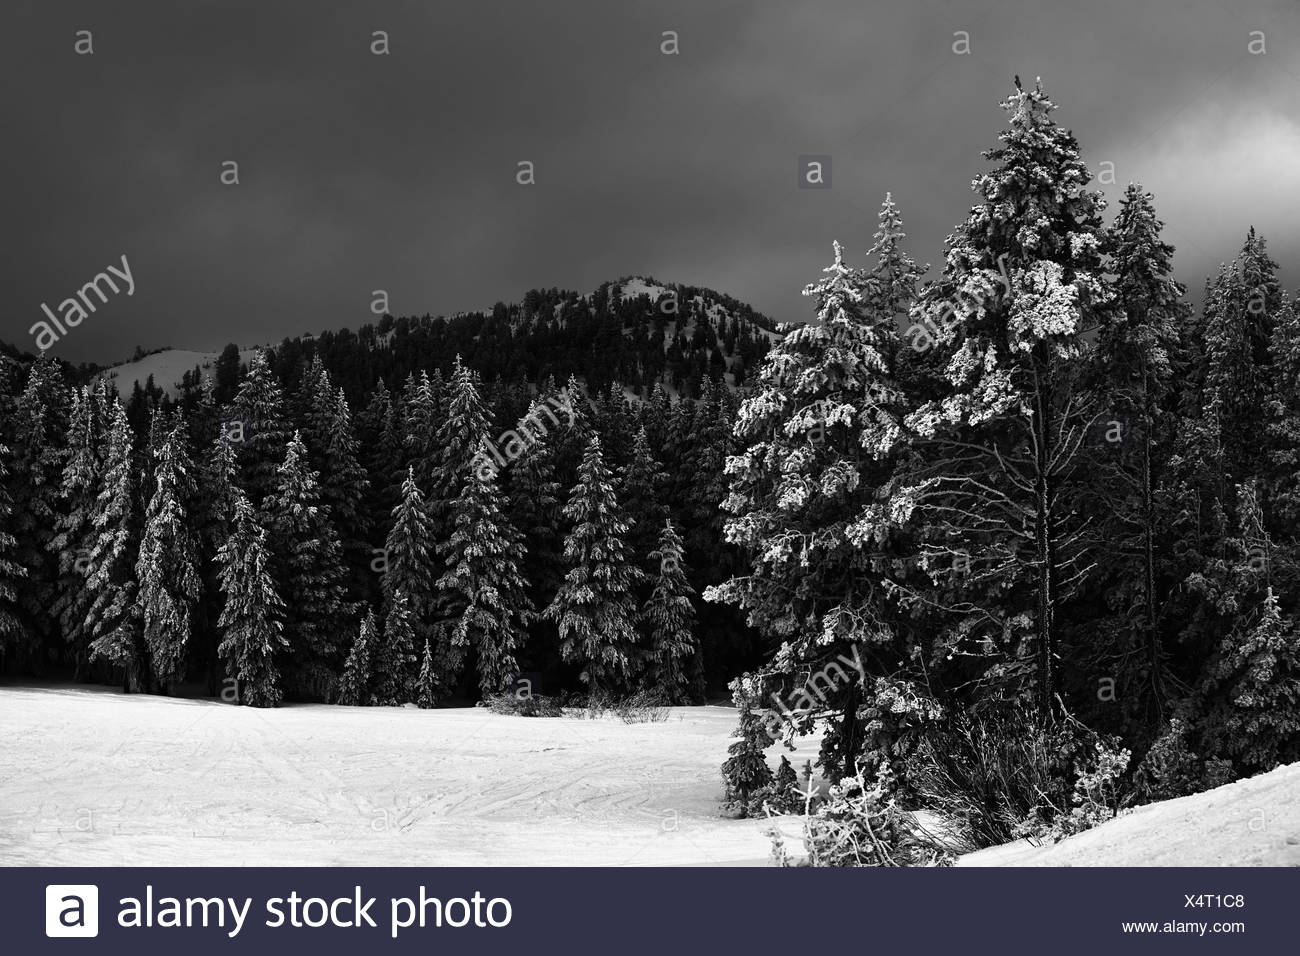 Snowy tree lined forest, hills and field - Stock Image